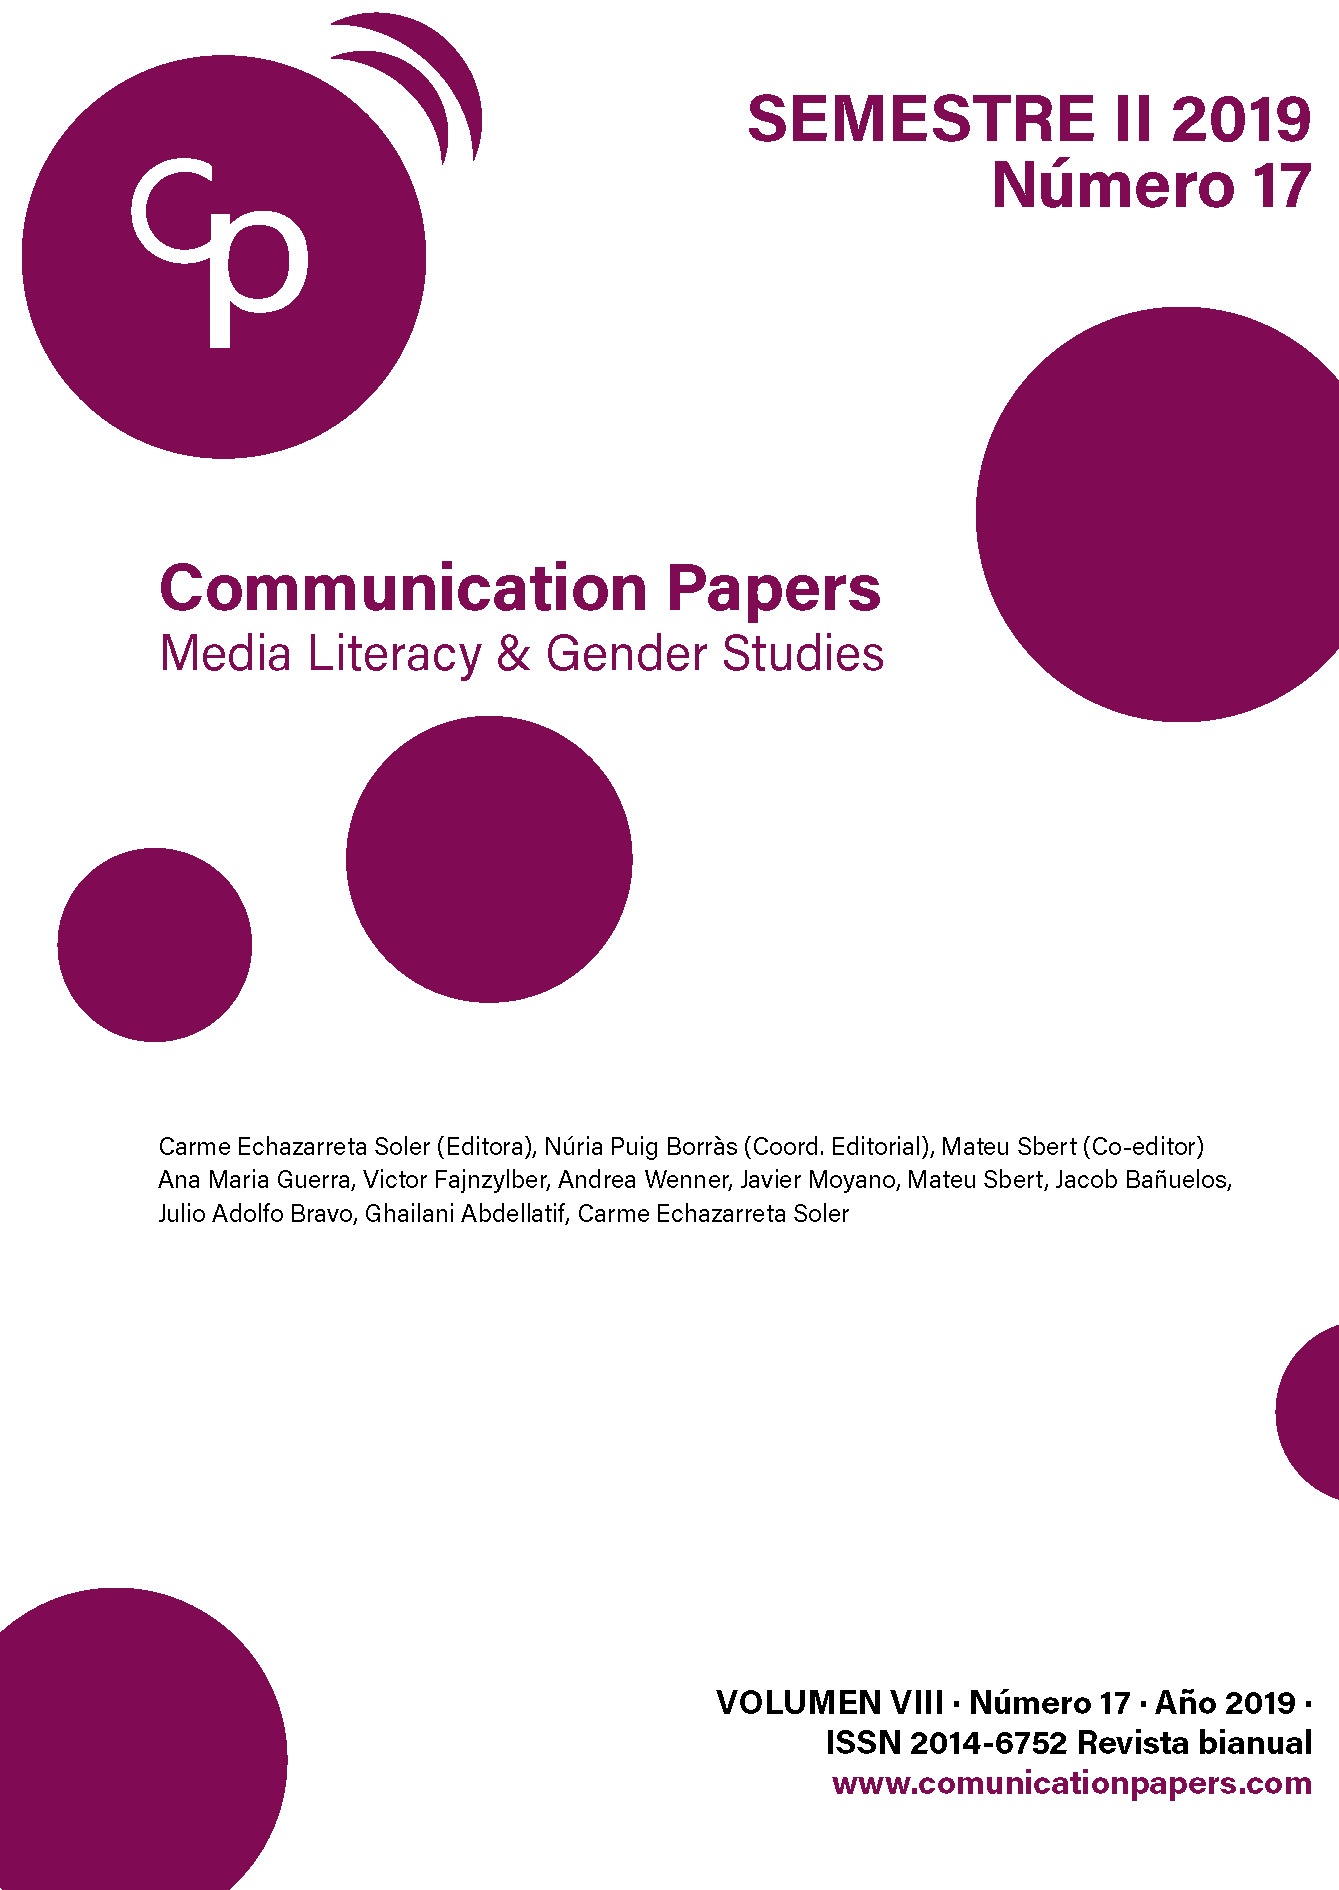 Communication Papers n.17